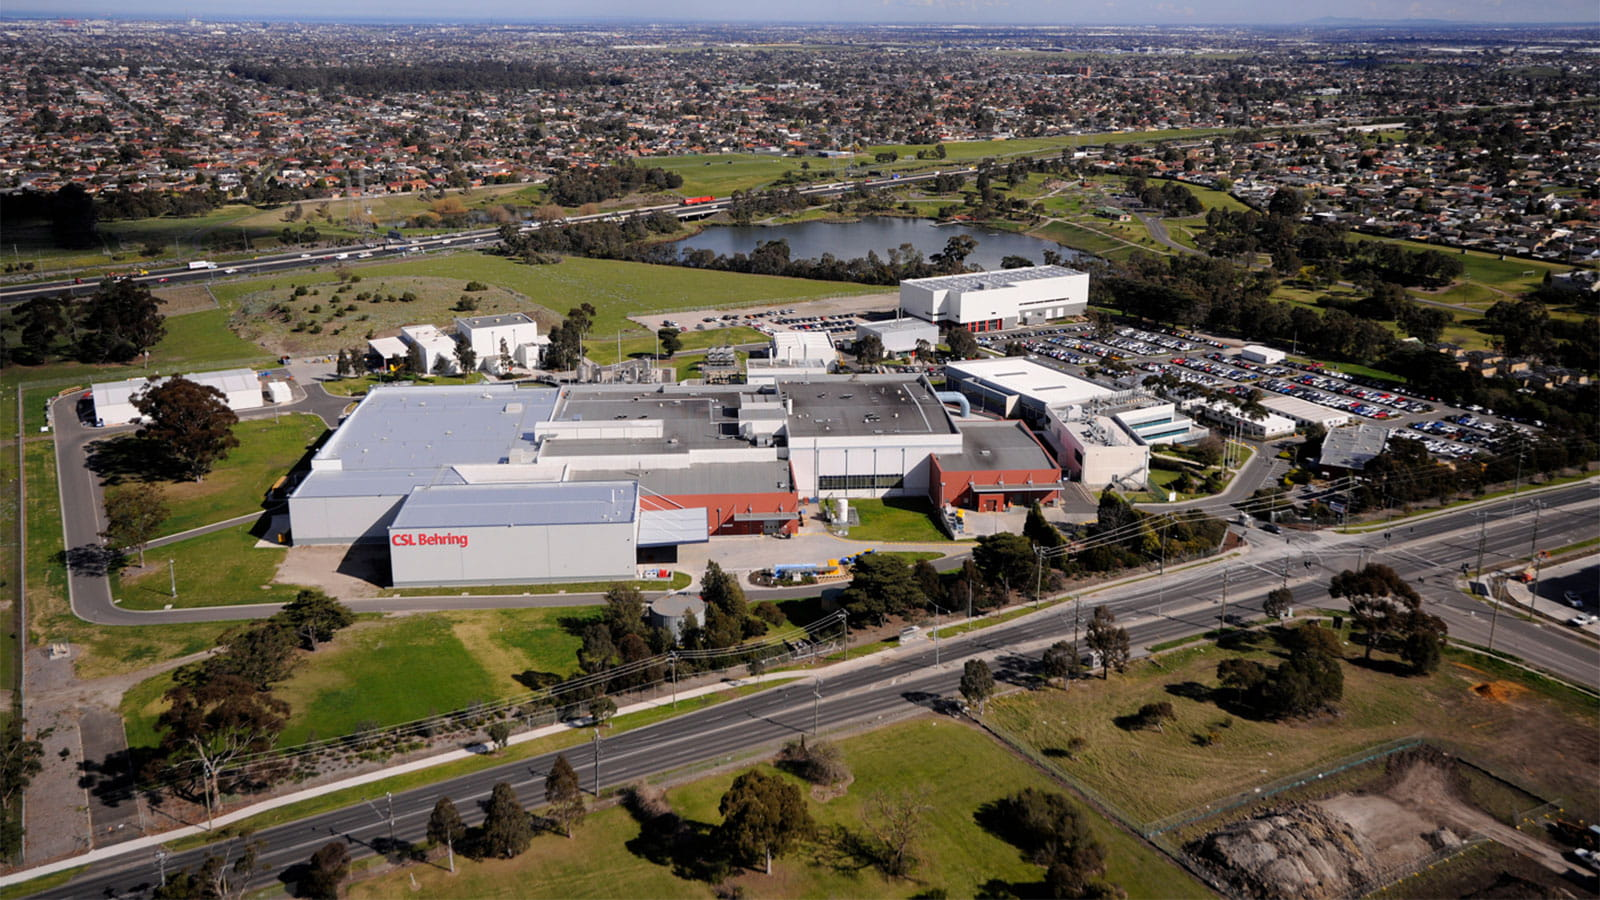 Aerial view of CSL Berhing Australia Broadmeadows site